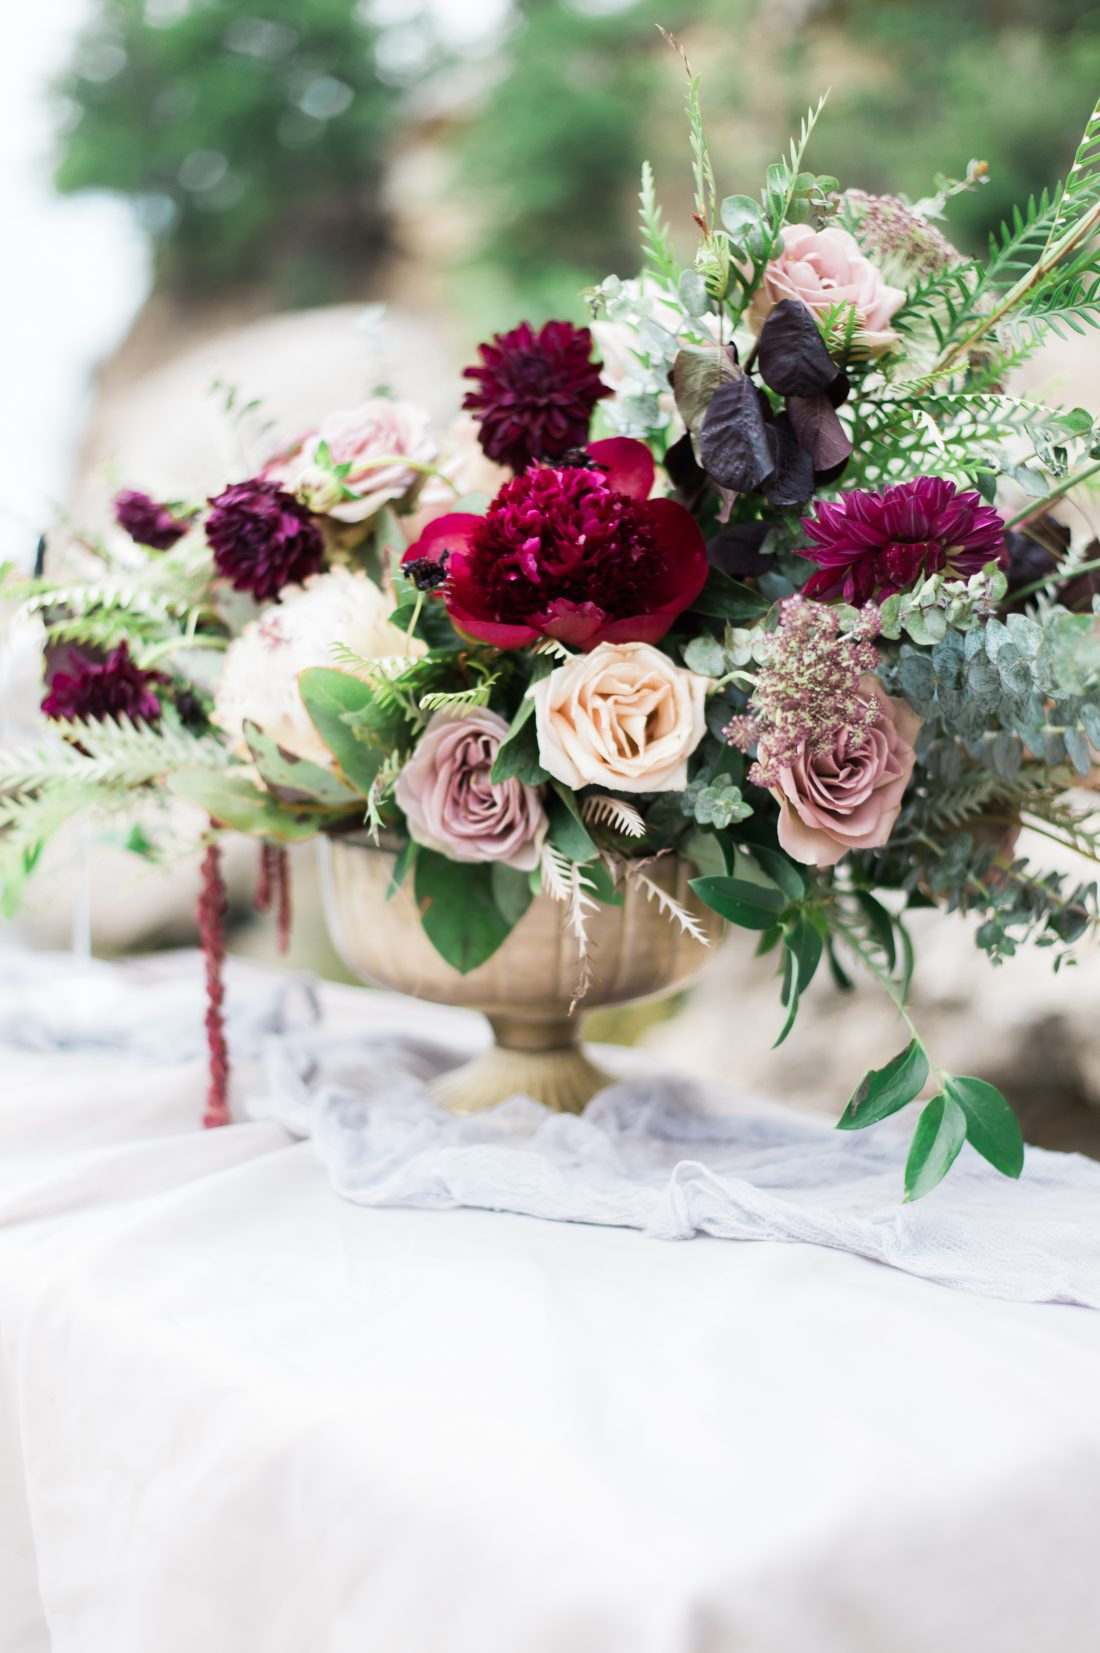 Take a look at what's trending this fall season with the fall wedding florals!